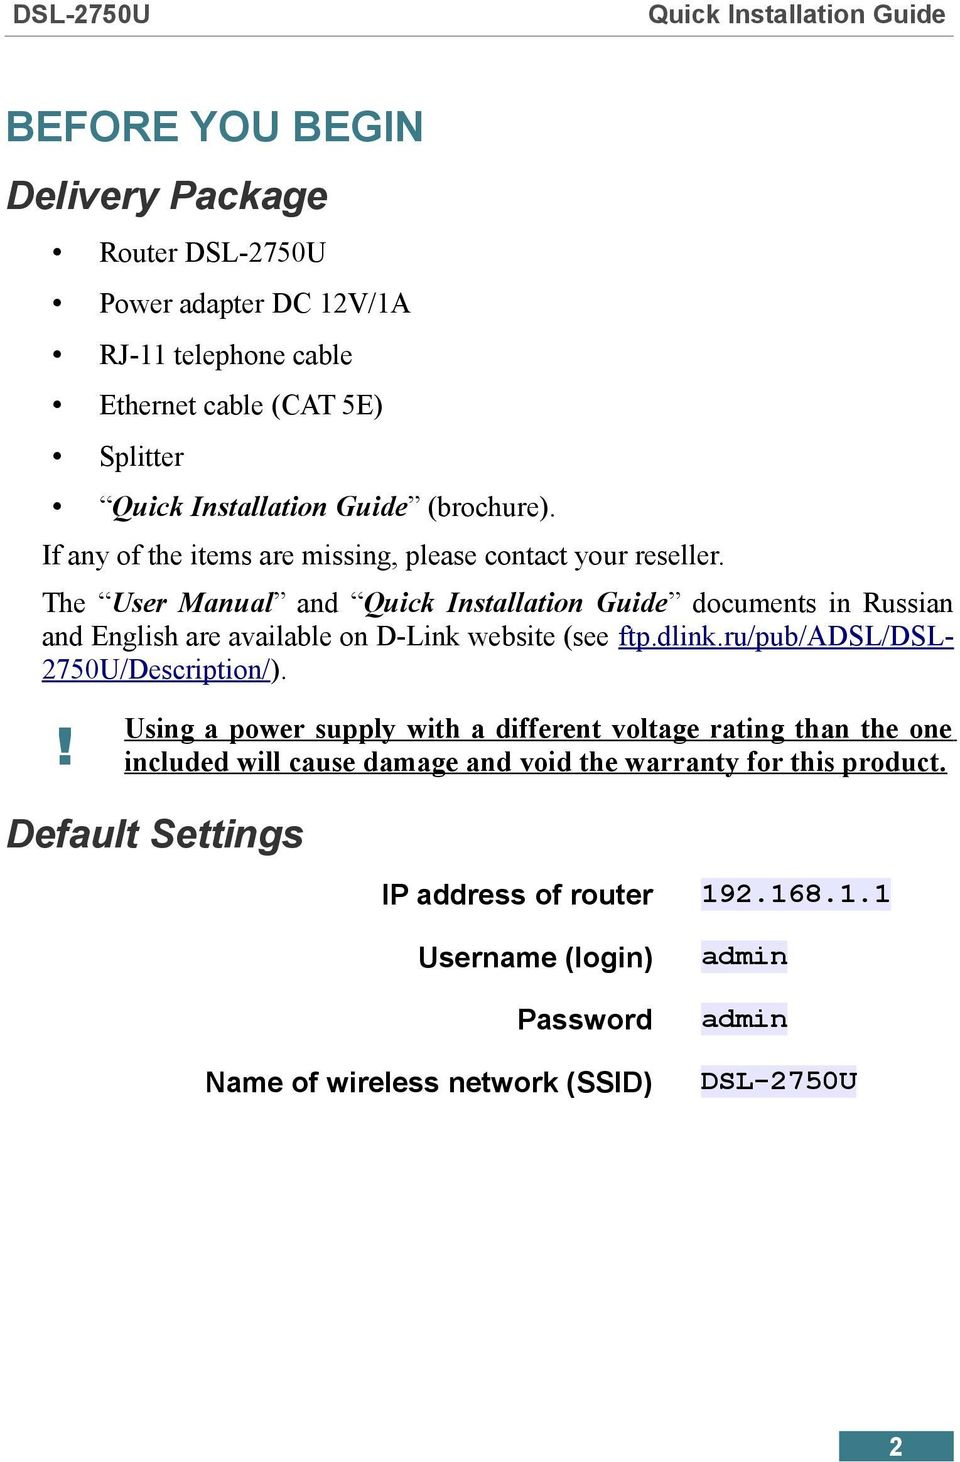 The User Manual and documents in Russian and English are available on D-Link website (see ftp.dlink.ru/pub/adsl/dsl- 2750U/Description/).